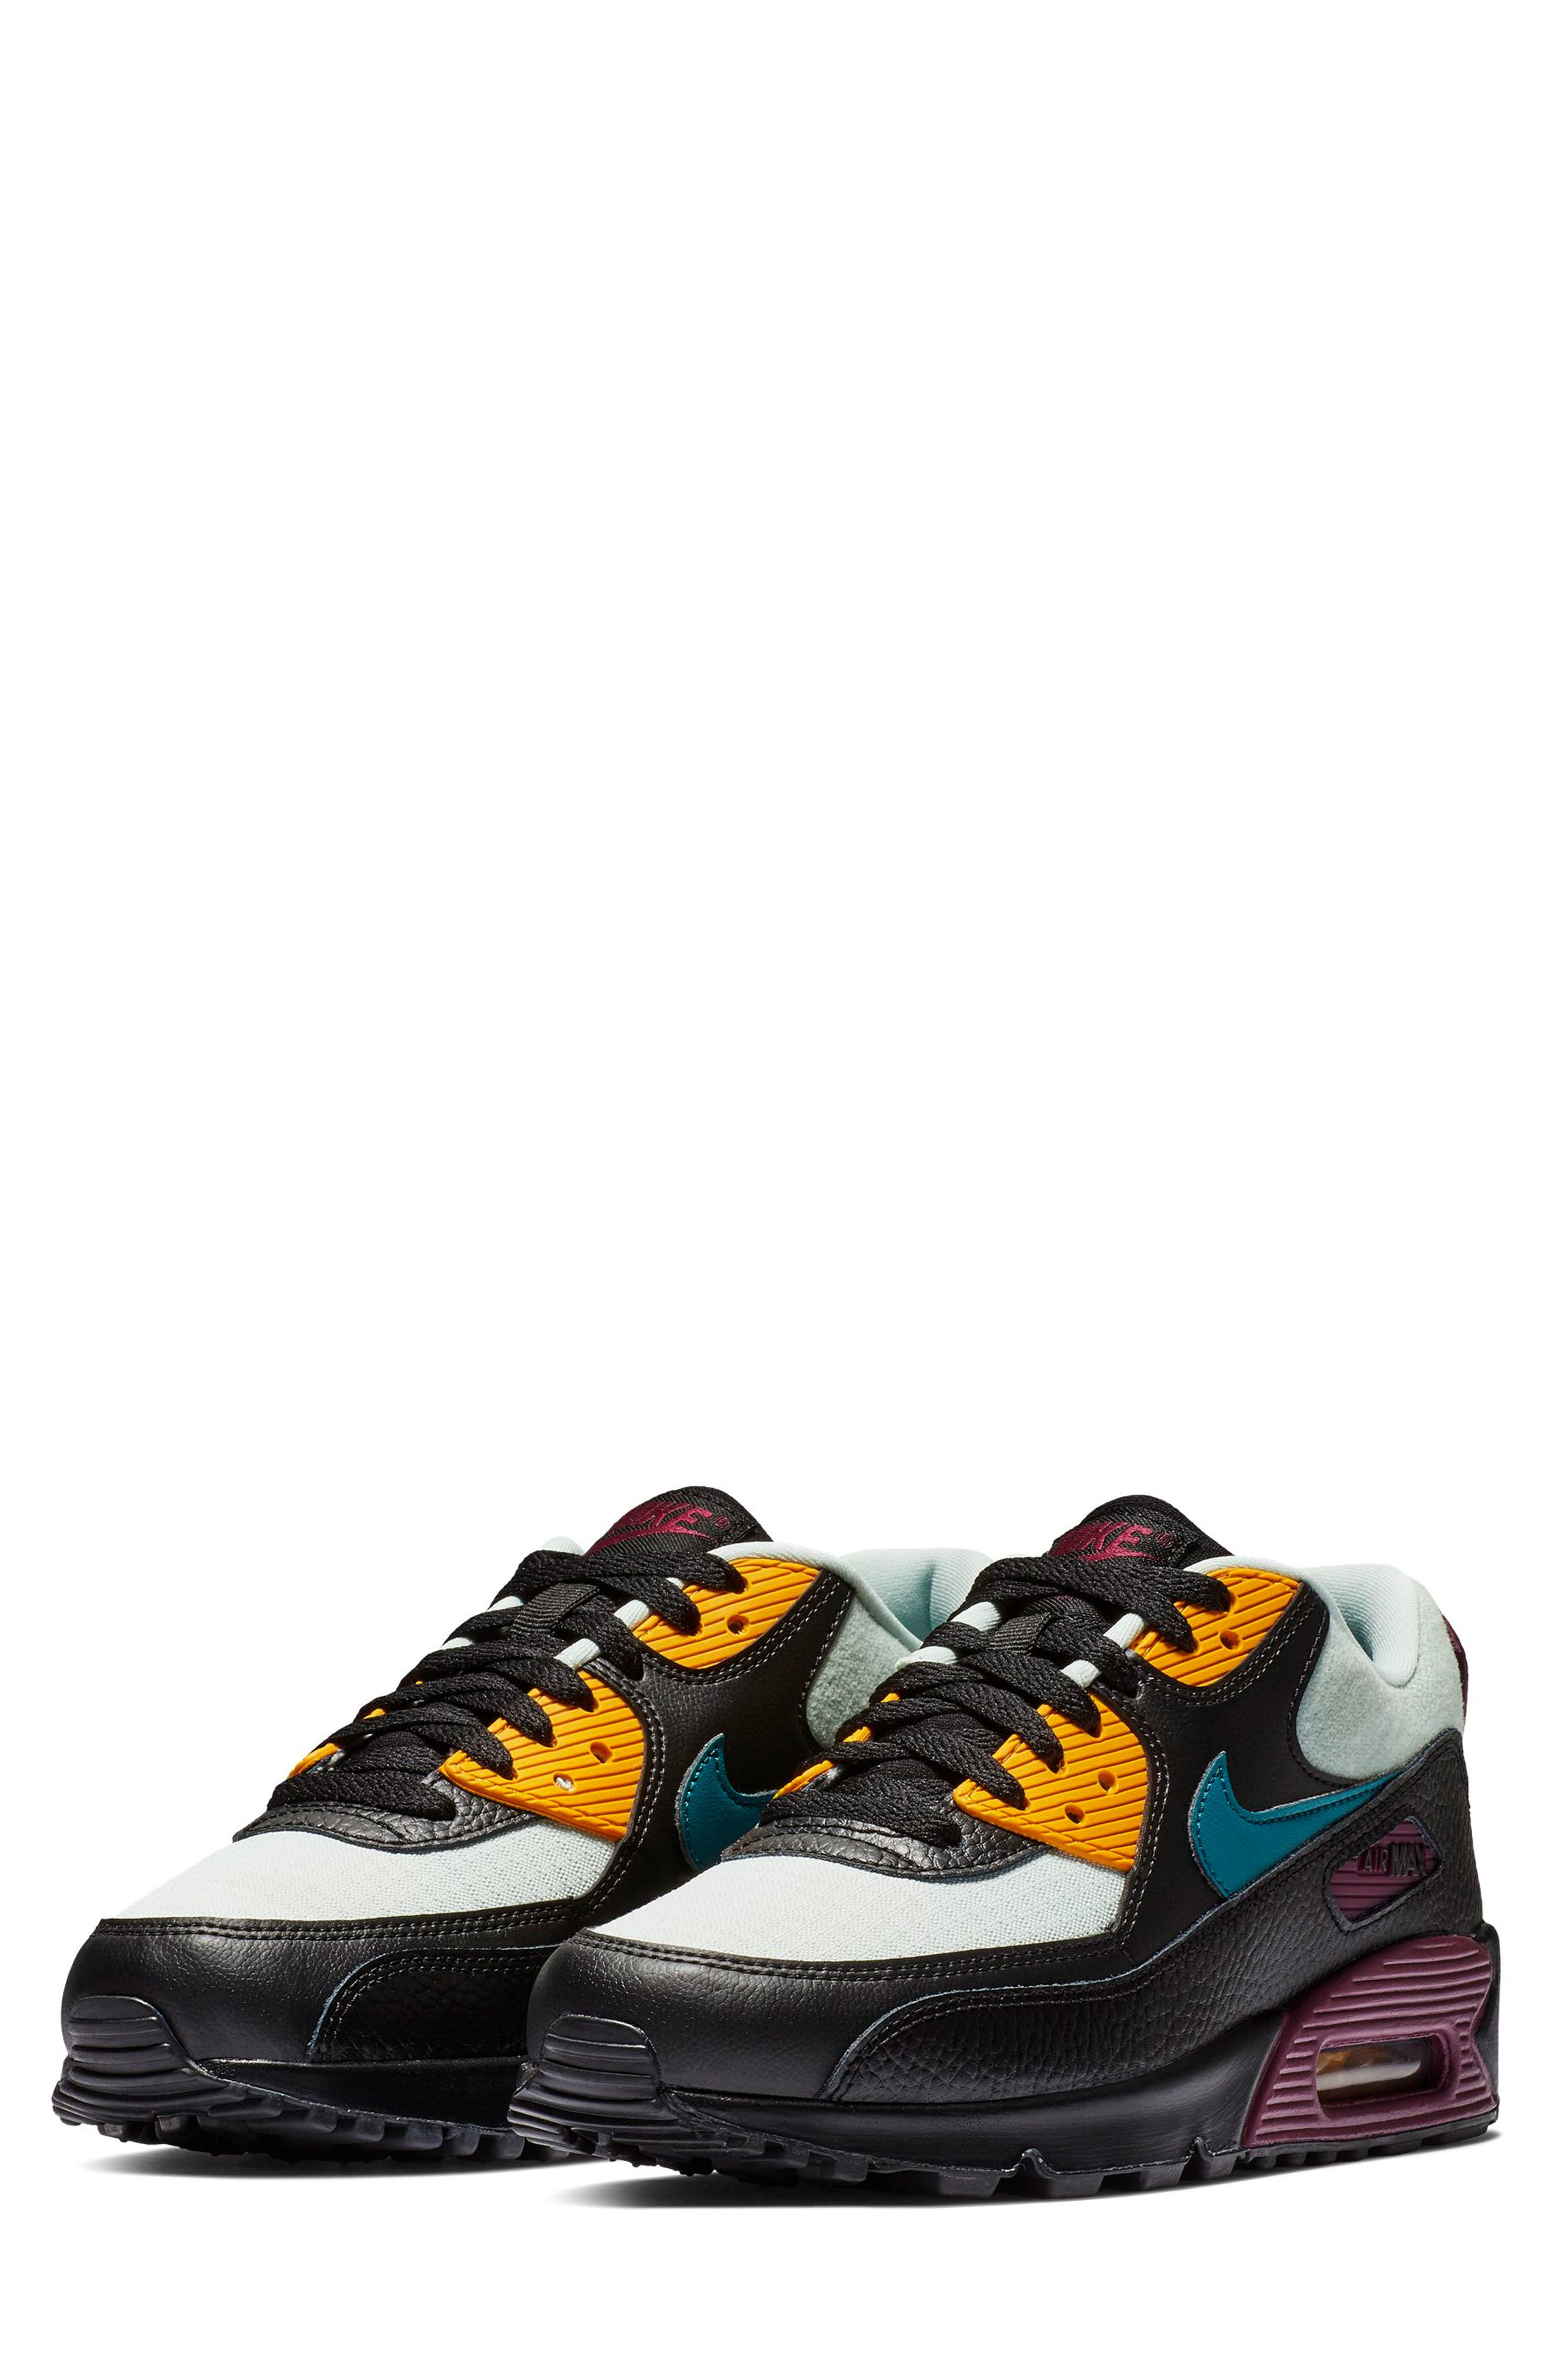 f39edfd34969e3 switzerland usd 74.00 214.60. nike air max 90 womens silver color 3ef71  1fc07  buy air max 90 sneaker main color silver teal black bordeaux 4caeb  b538a